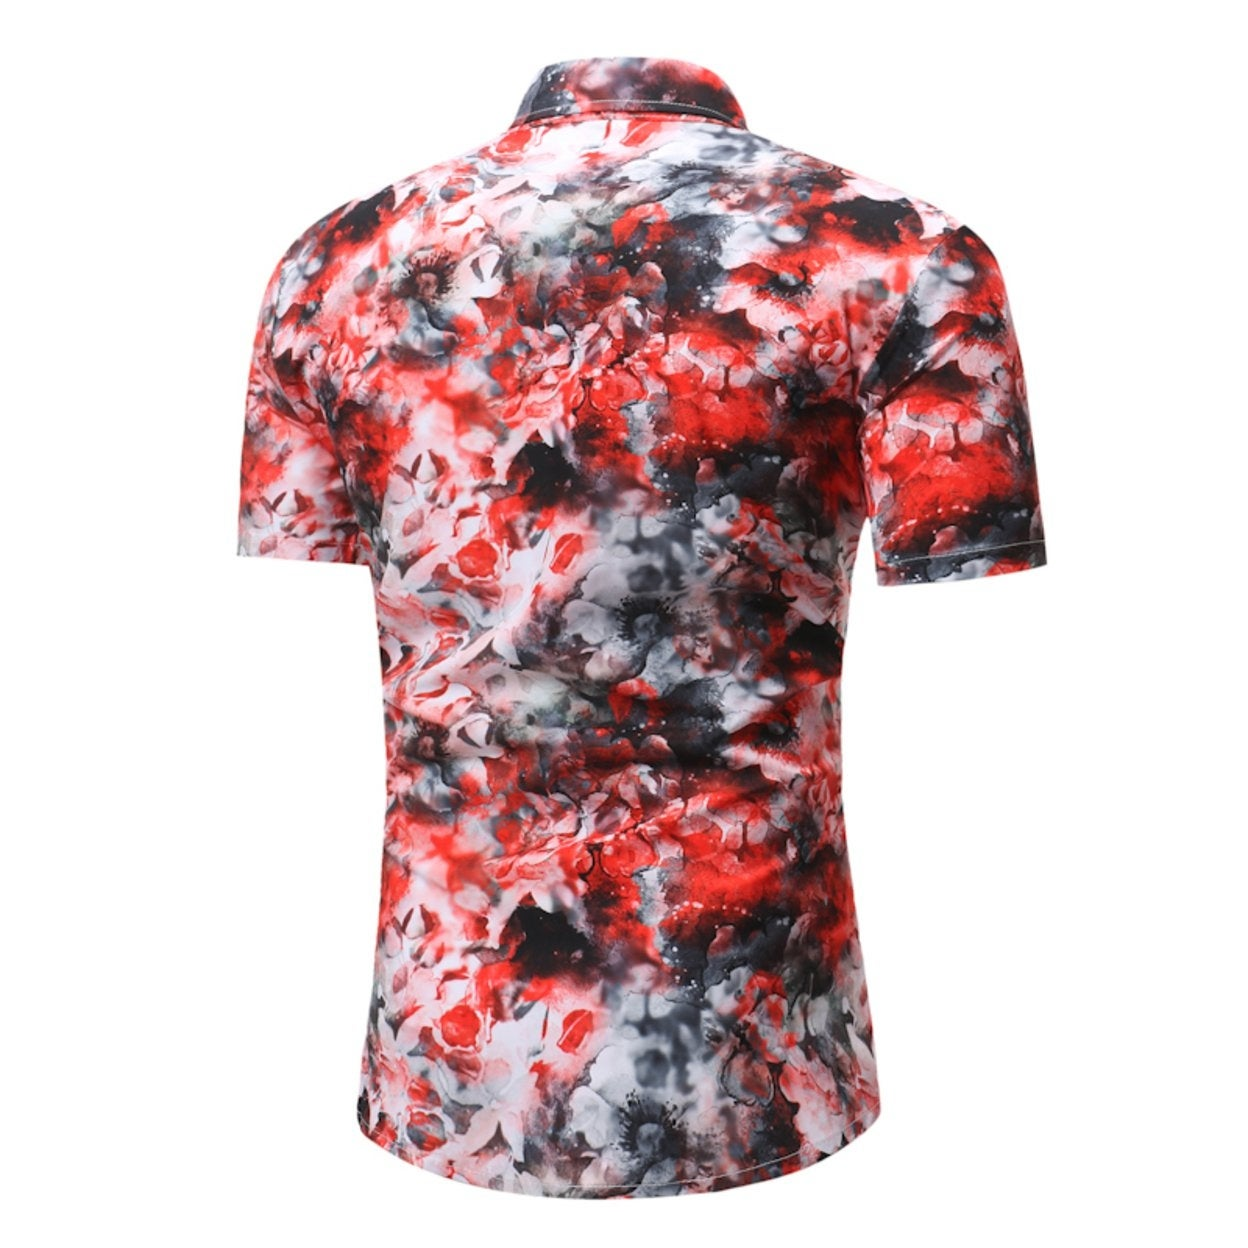 328adec1ac68 Shop Men s Floral Button Down Short Sleeve Hawaiian Tropical Shirt - On  Sale - Free Shipping On Orders Over  45 - Overstock - 27184793